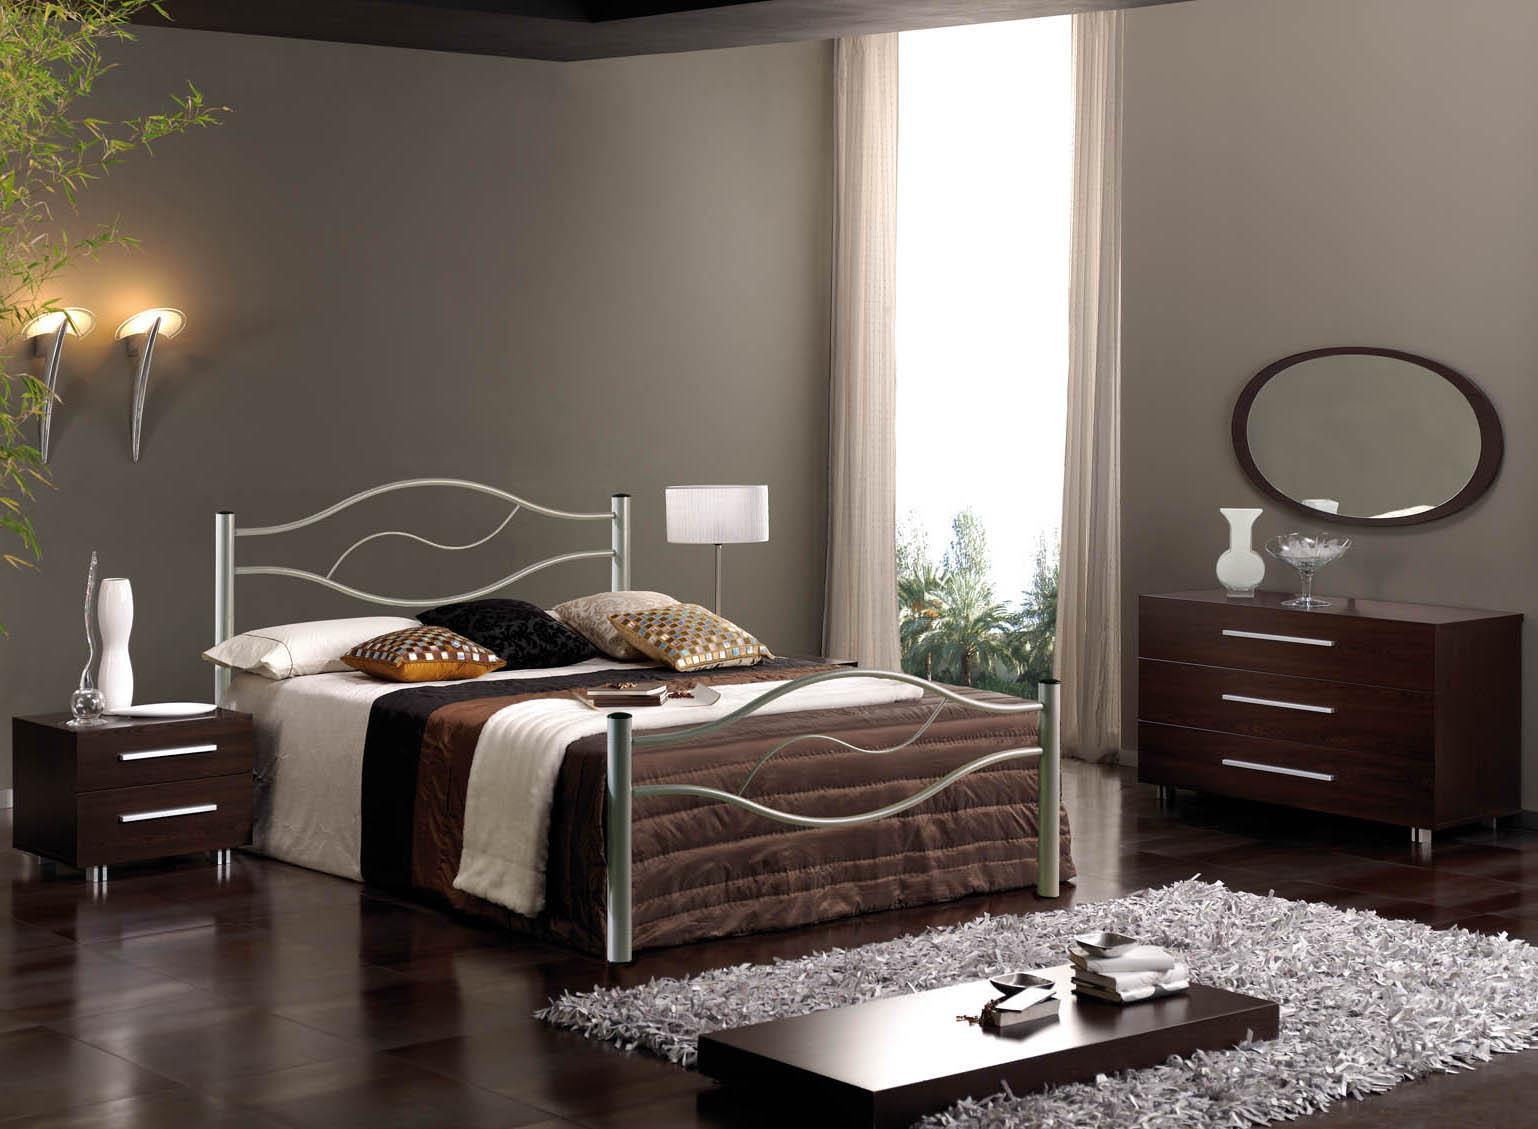 Furniture Ideas For Small Bedrooms Small Bedroom Furniture Arrangement Small Room Decorating Ideas,Plants That Grow In Dark Rooms